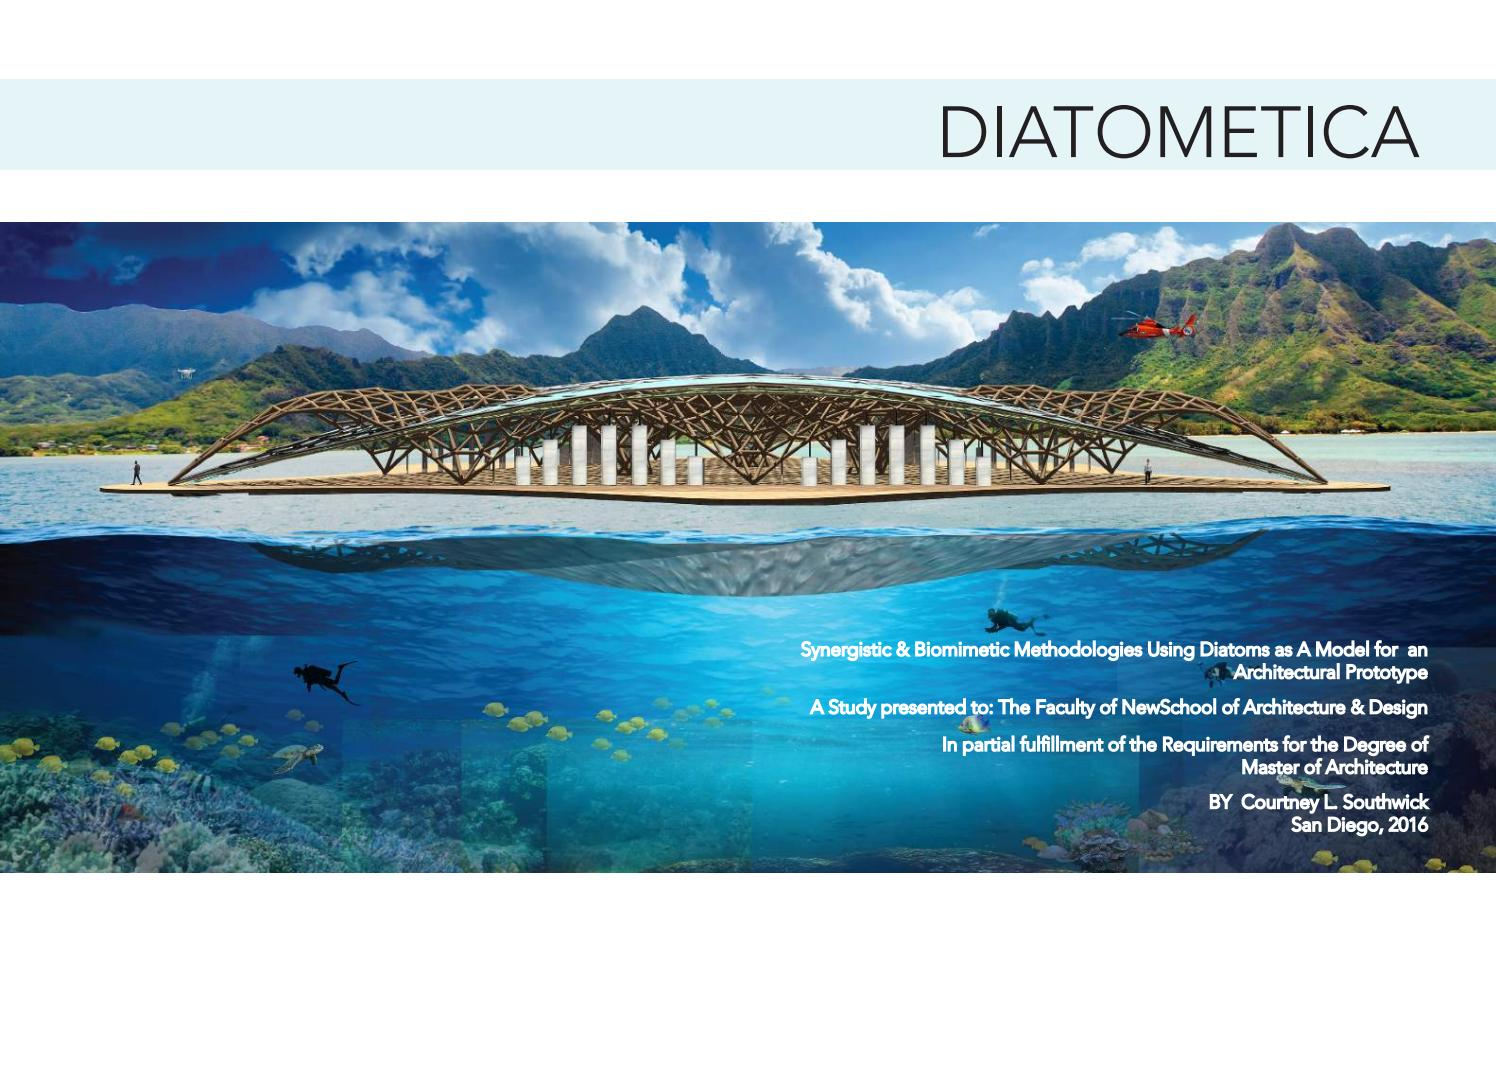 Diatometica A Floating Marine Biology Lab With The Dual Function How To Replace Bathtub Faucet 63jpg Apps Directories Of Disaster Response Center By Courtney Fromberg Issuu